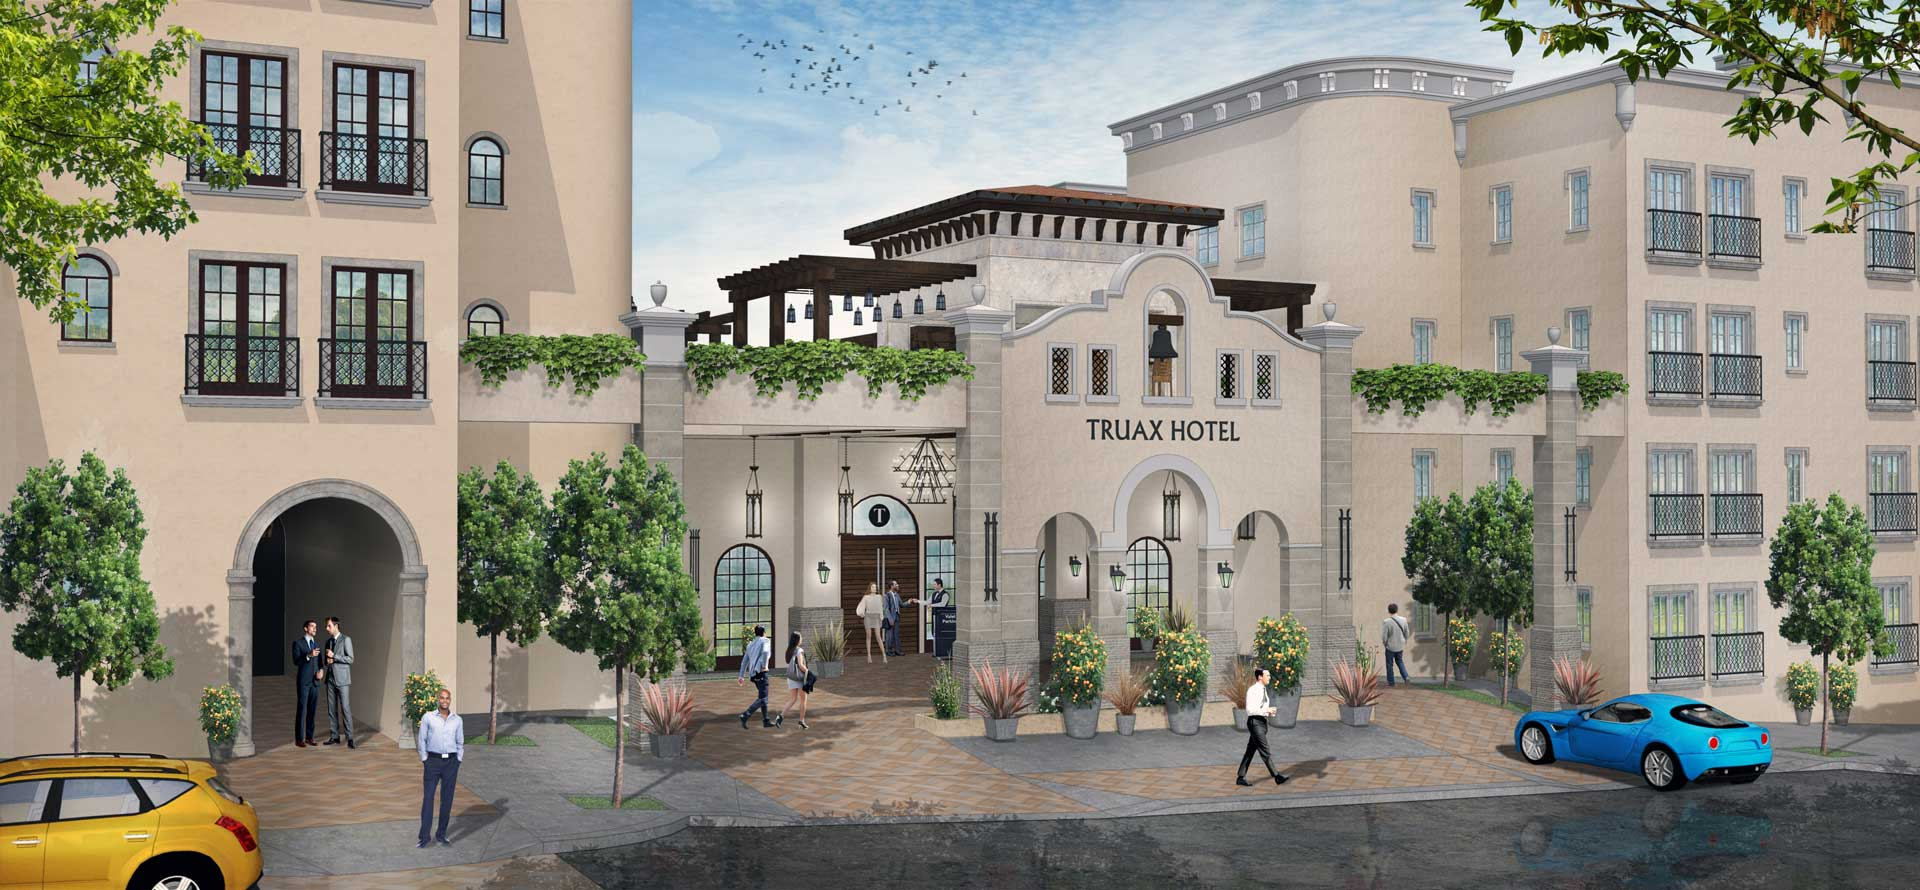 Truax Hotel Exterior Web Optimized May 2018 (2)